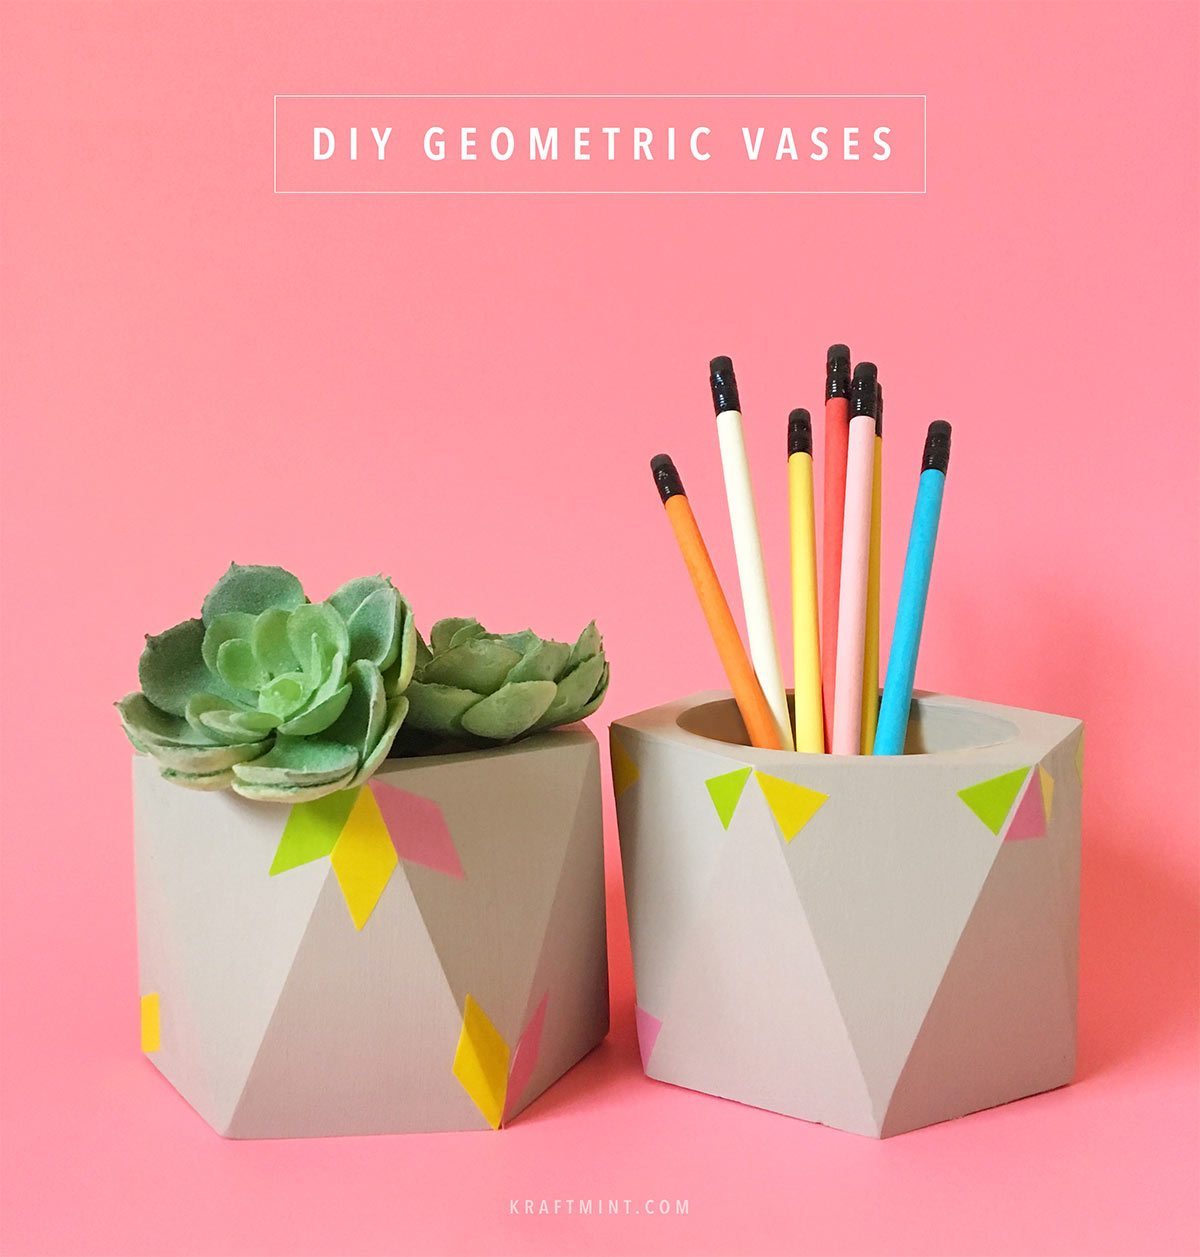 DIY Geometric Vases